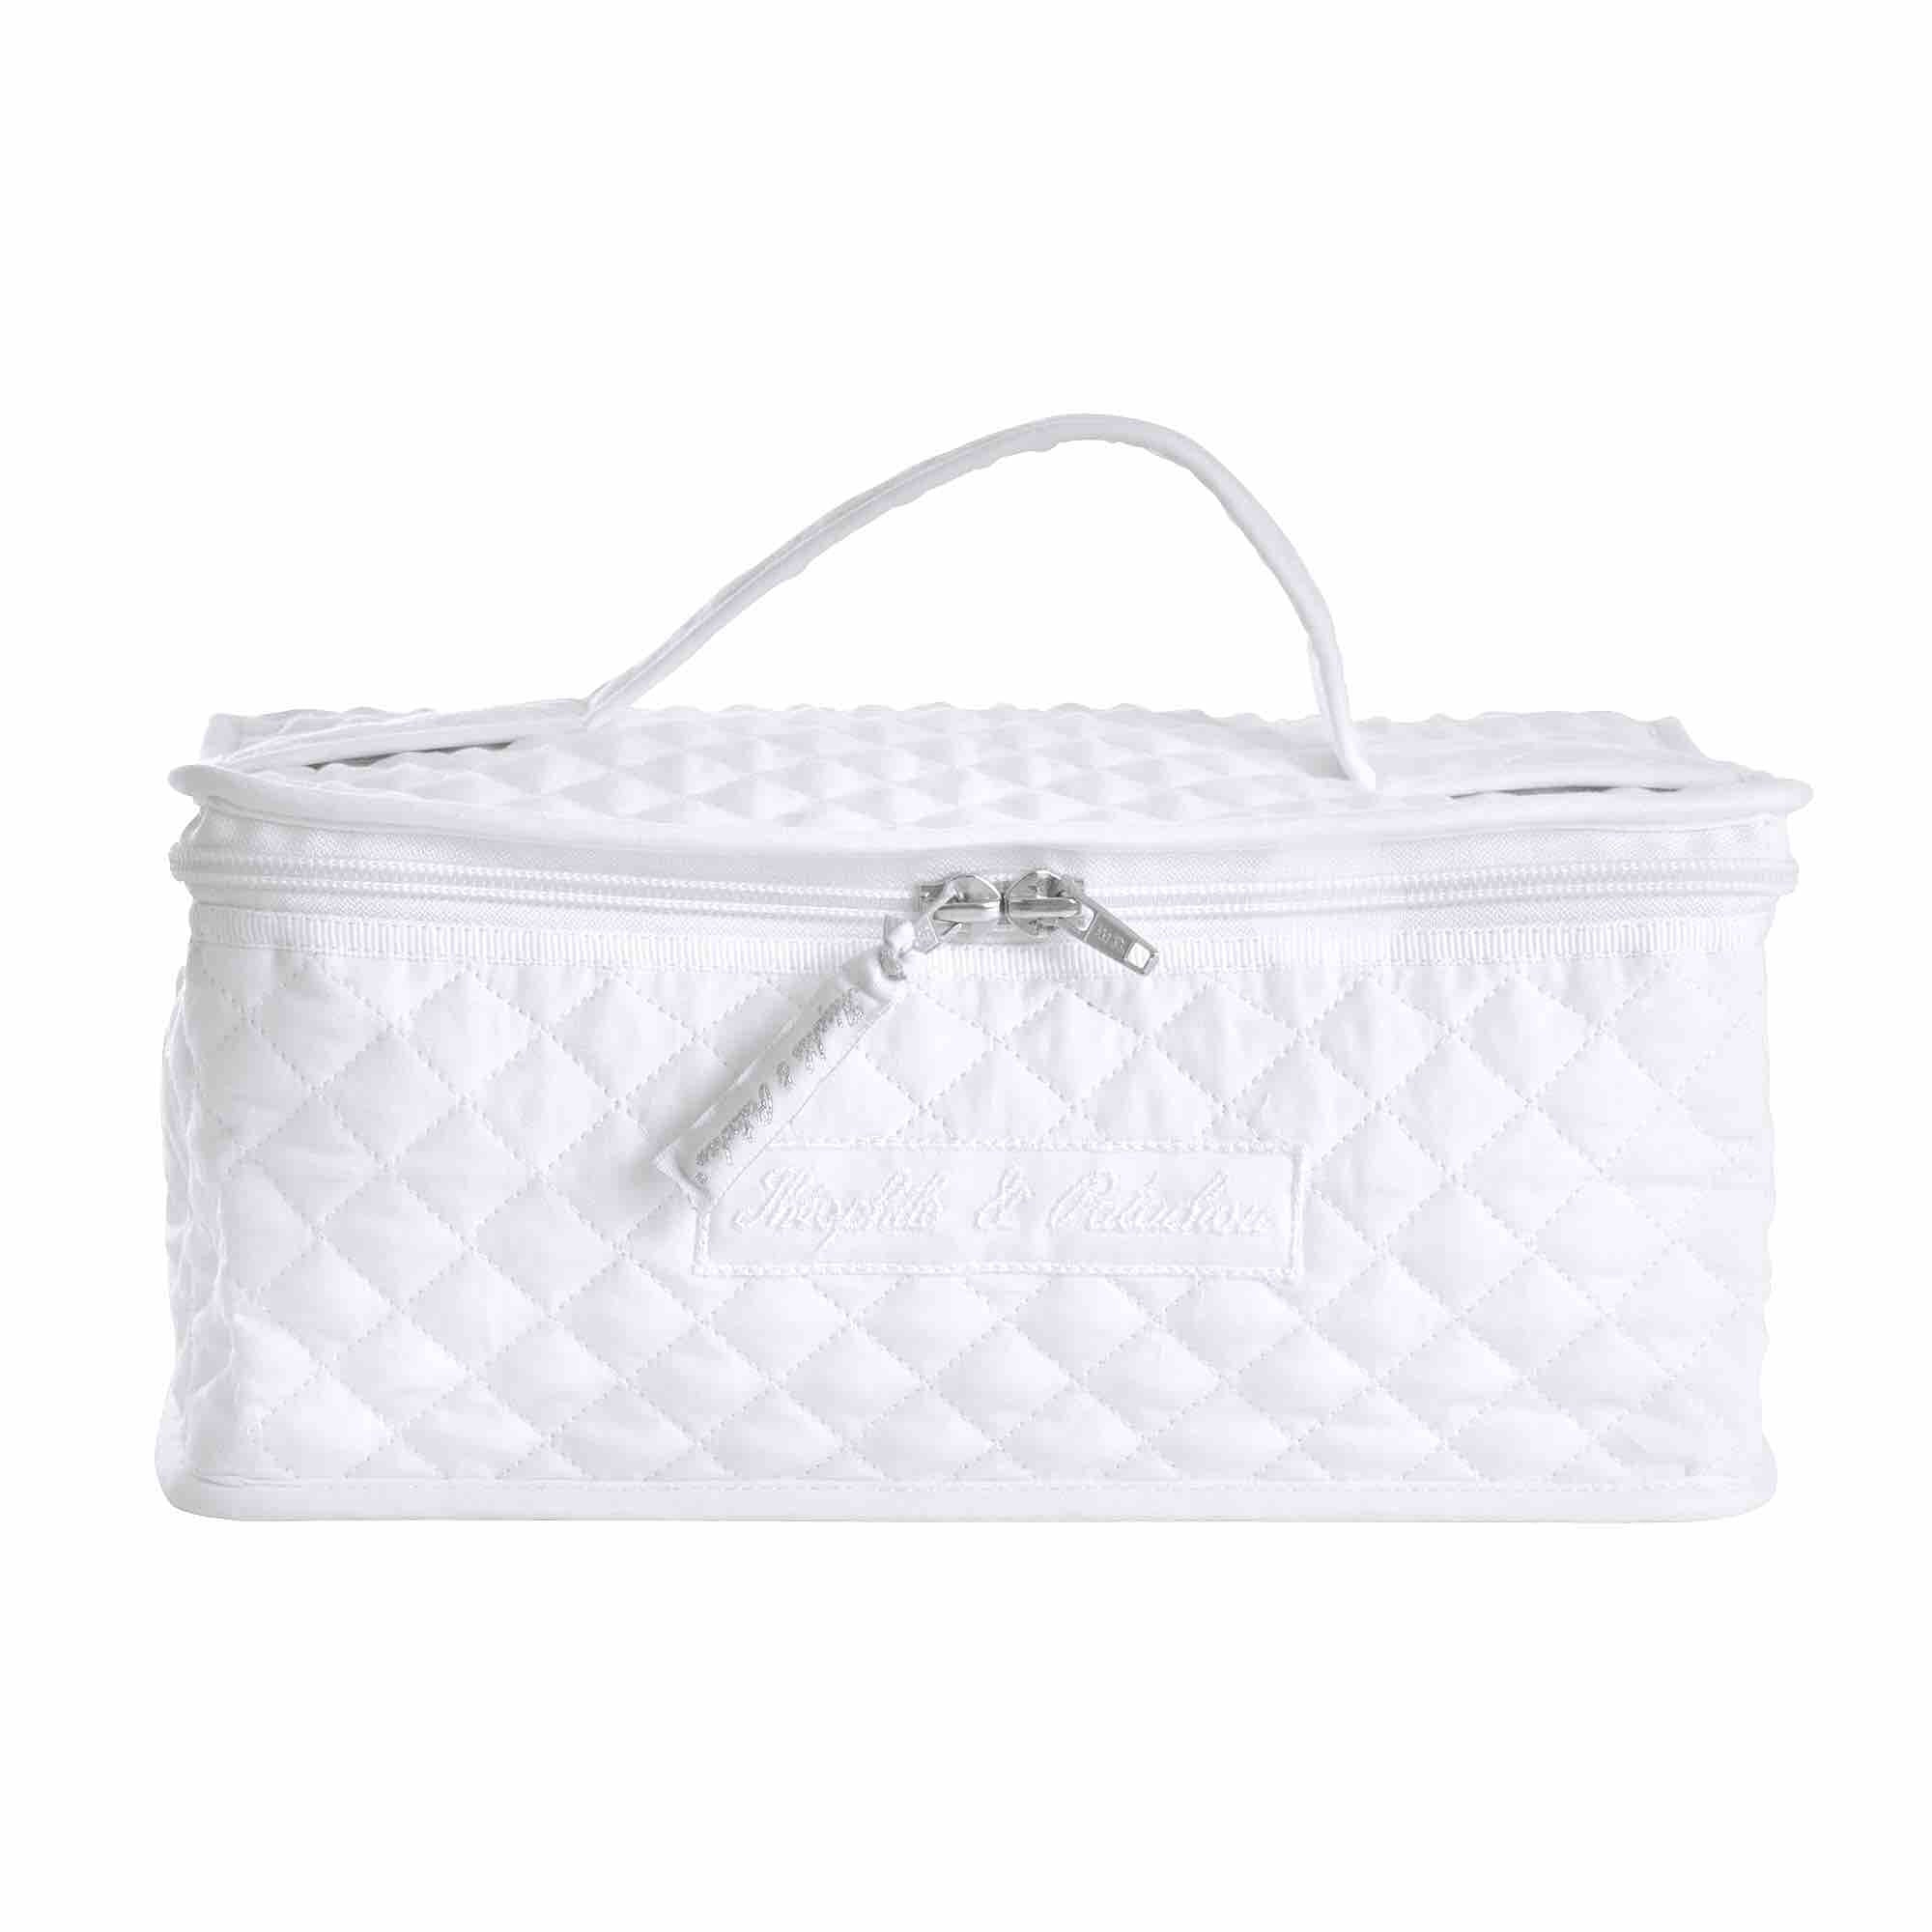 Theophile & Patachou Toiletry Bag - Royal White